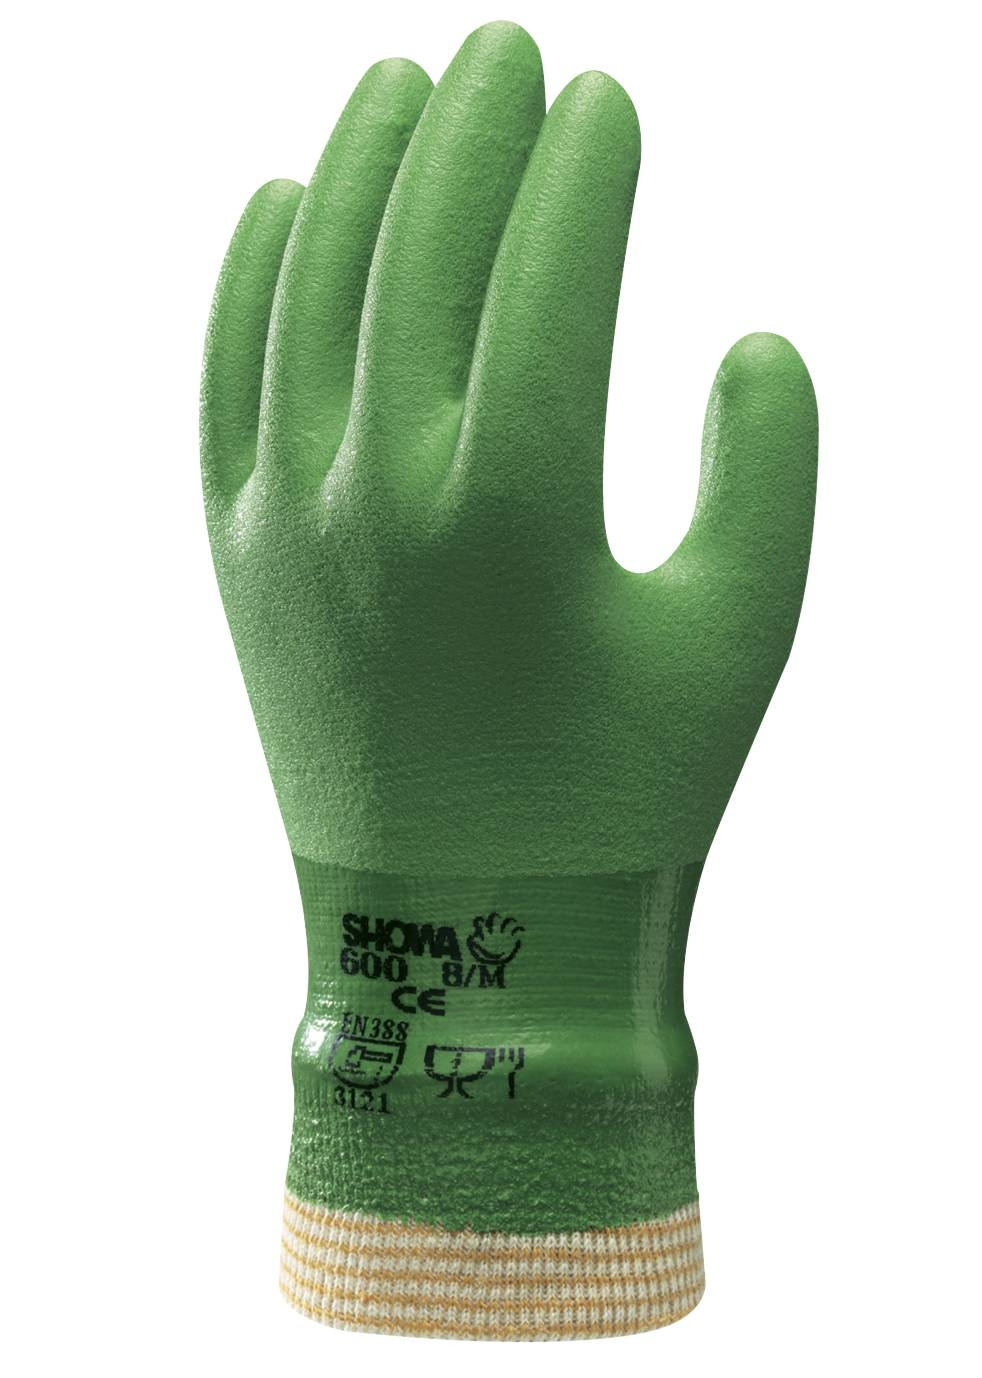 Showa Atlas 600 Vinylove Chemical Resistant Gloves Palmflex